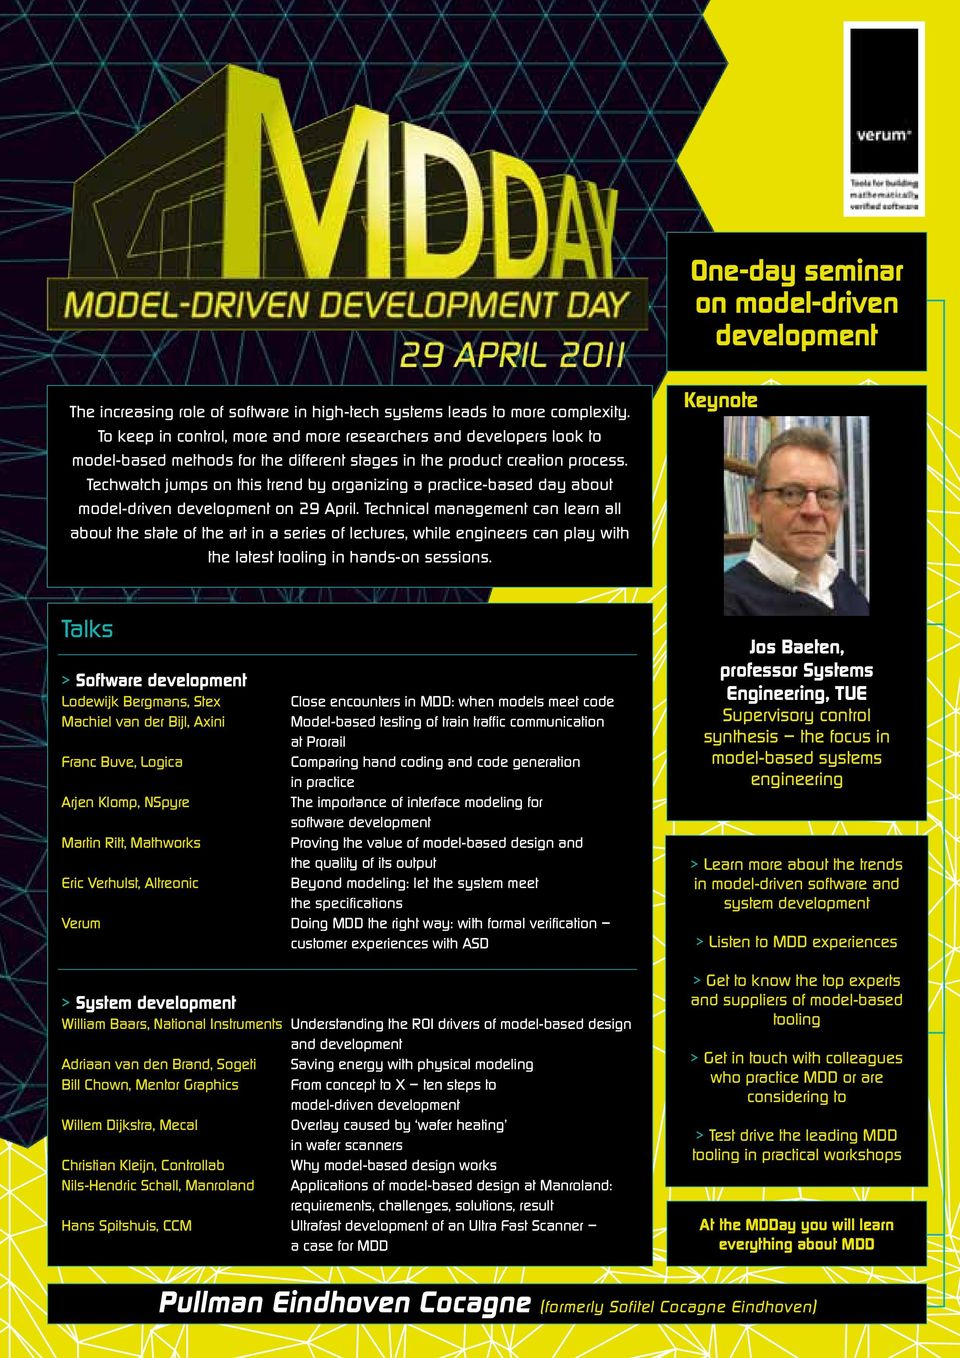 Techwatch jumps on this trend by organizing a practice-based day about model-driven development on 29 April.